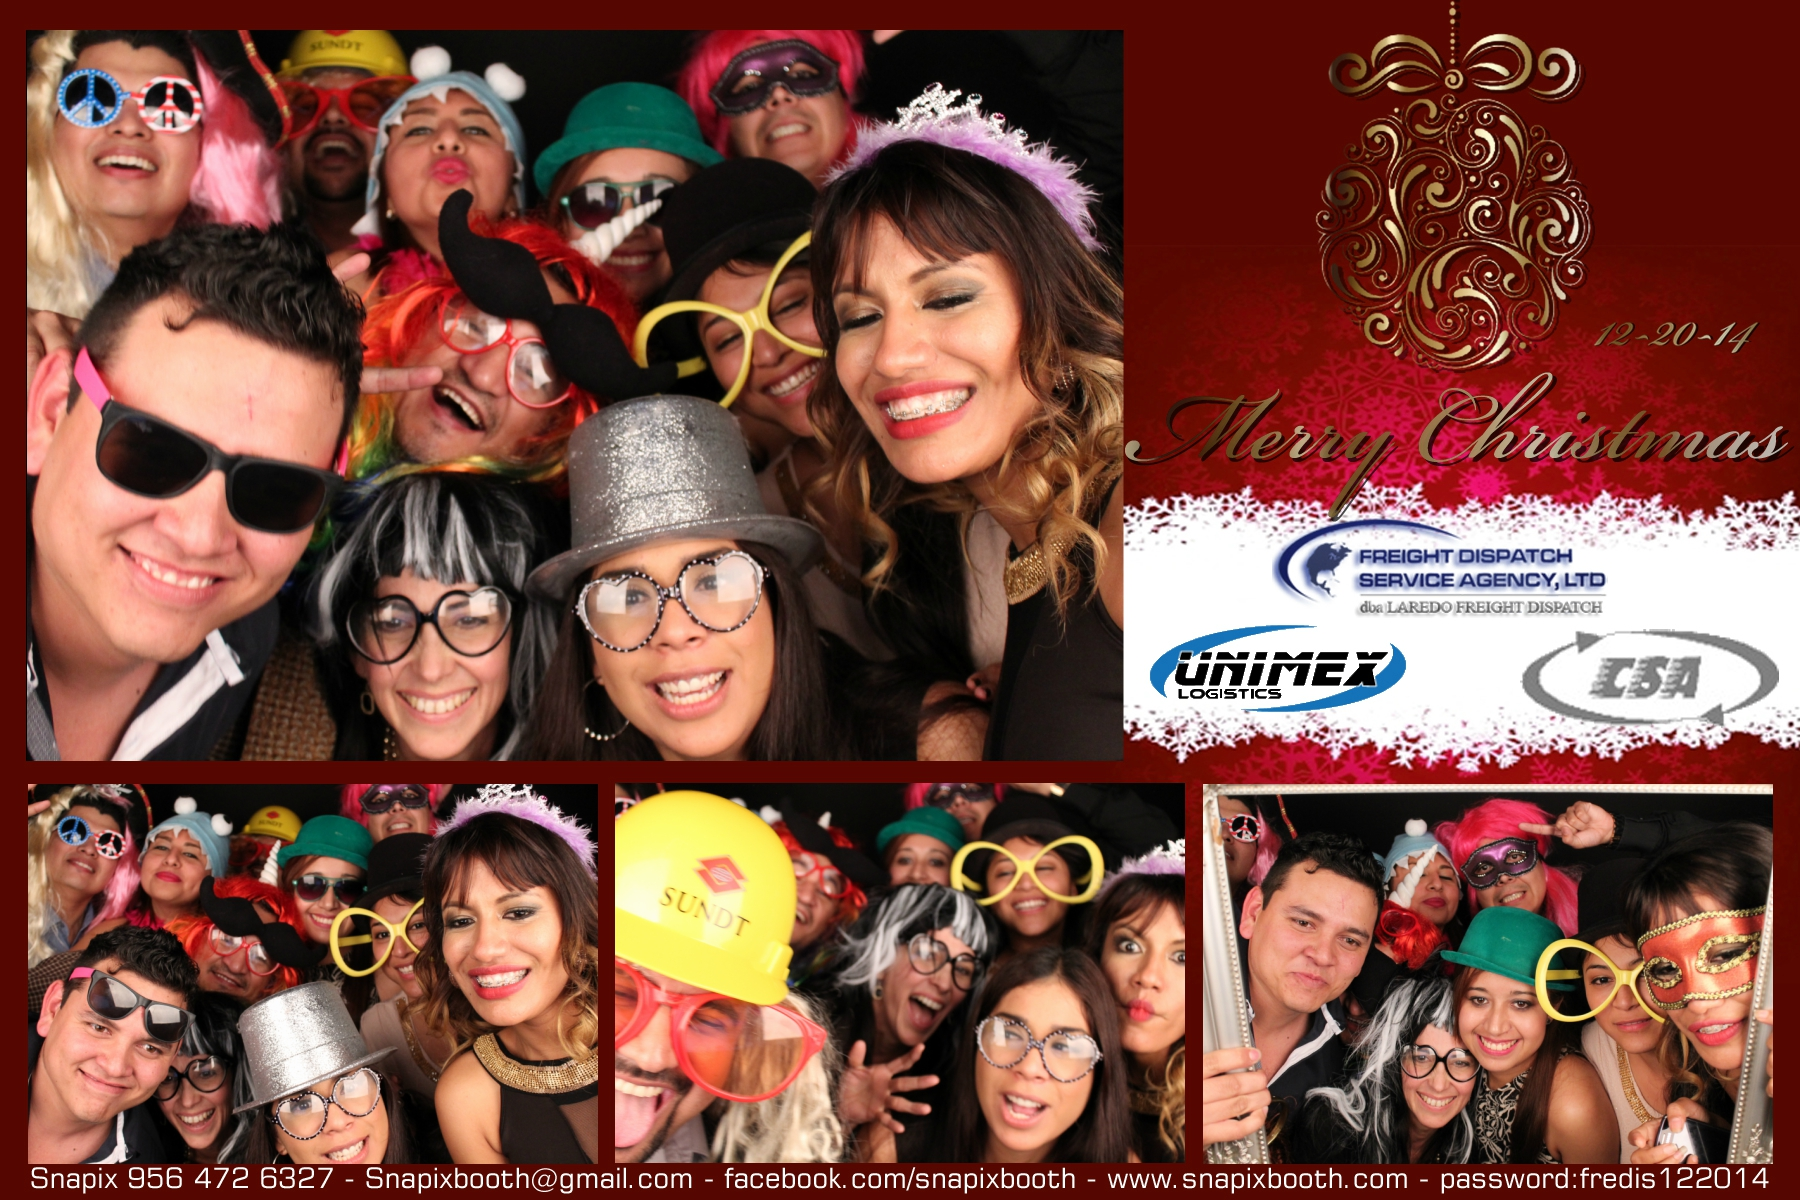 Freight Company Christmas Party